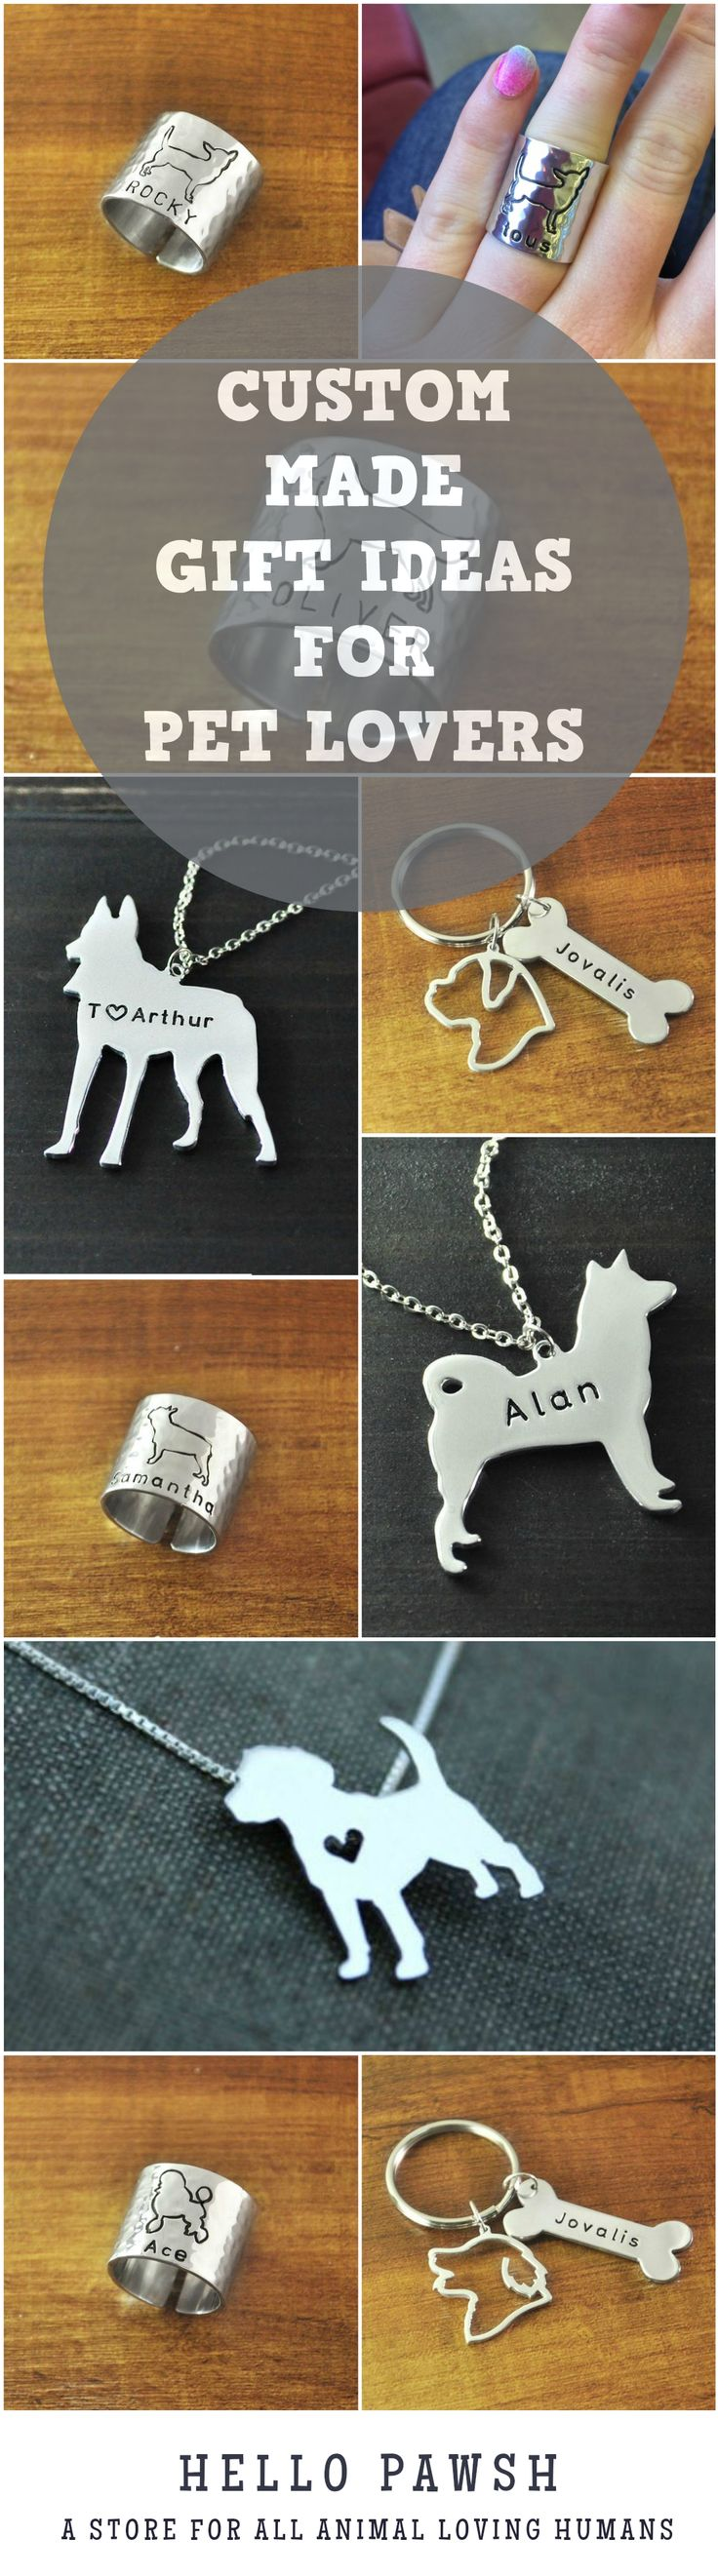 Check out these great personalized items for dog lovers! They make perfect and thoughtful gifts for your dog loving friends and families! They are perfect Mother's day gifts for all dog loving moms! #dog #doglovers